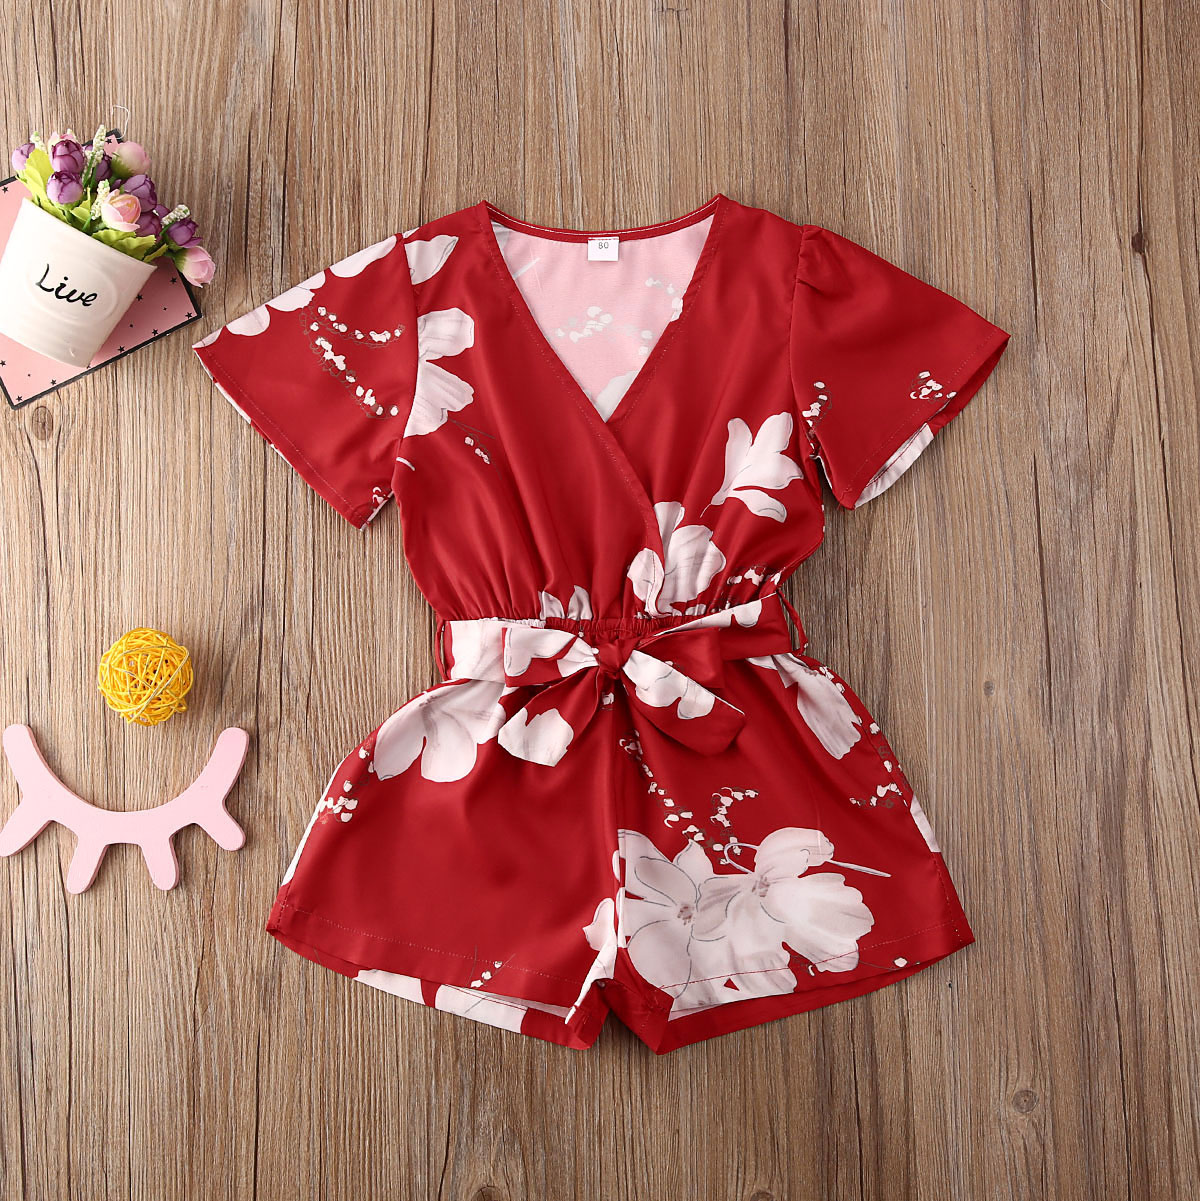 Pudcoco Toddler Baby Girl Clothes Flower Print Short Sleeve Romper Jumpsuit One-Piece Outfit Sunsuit Clothes